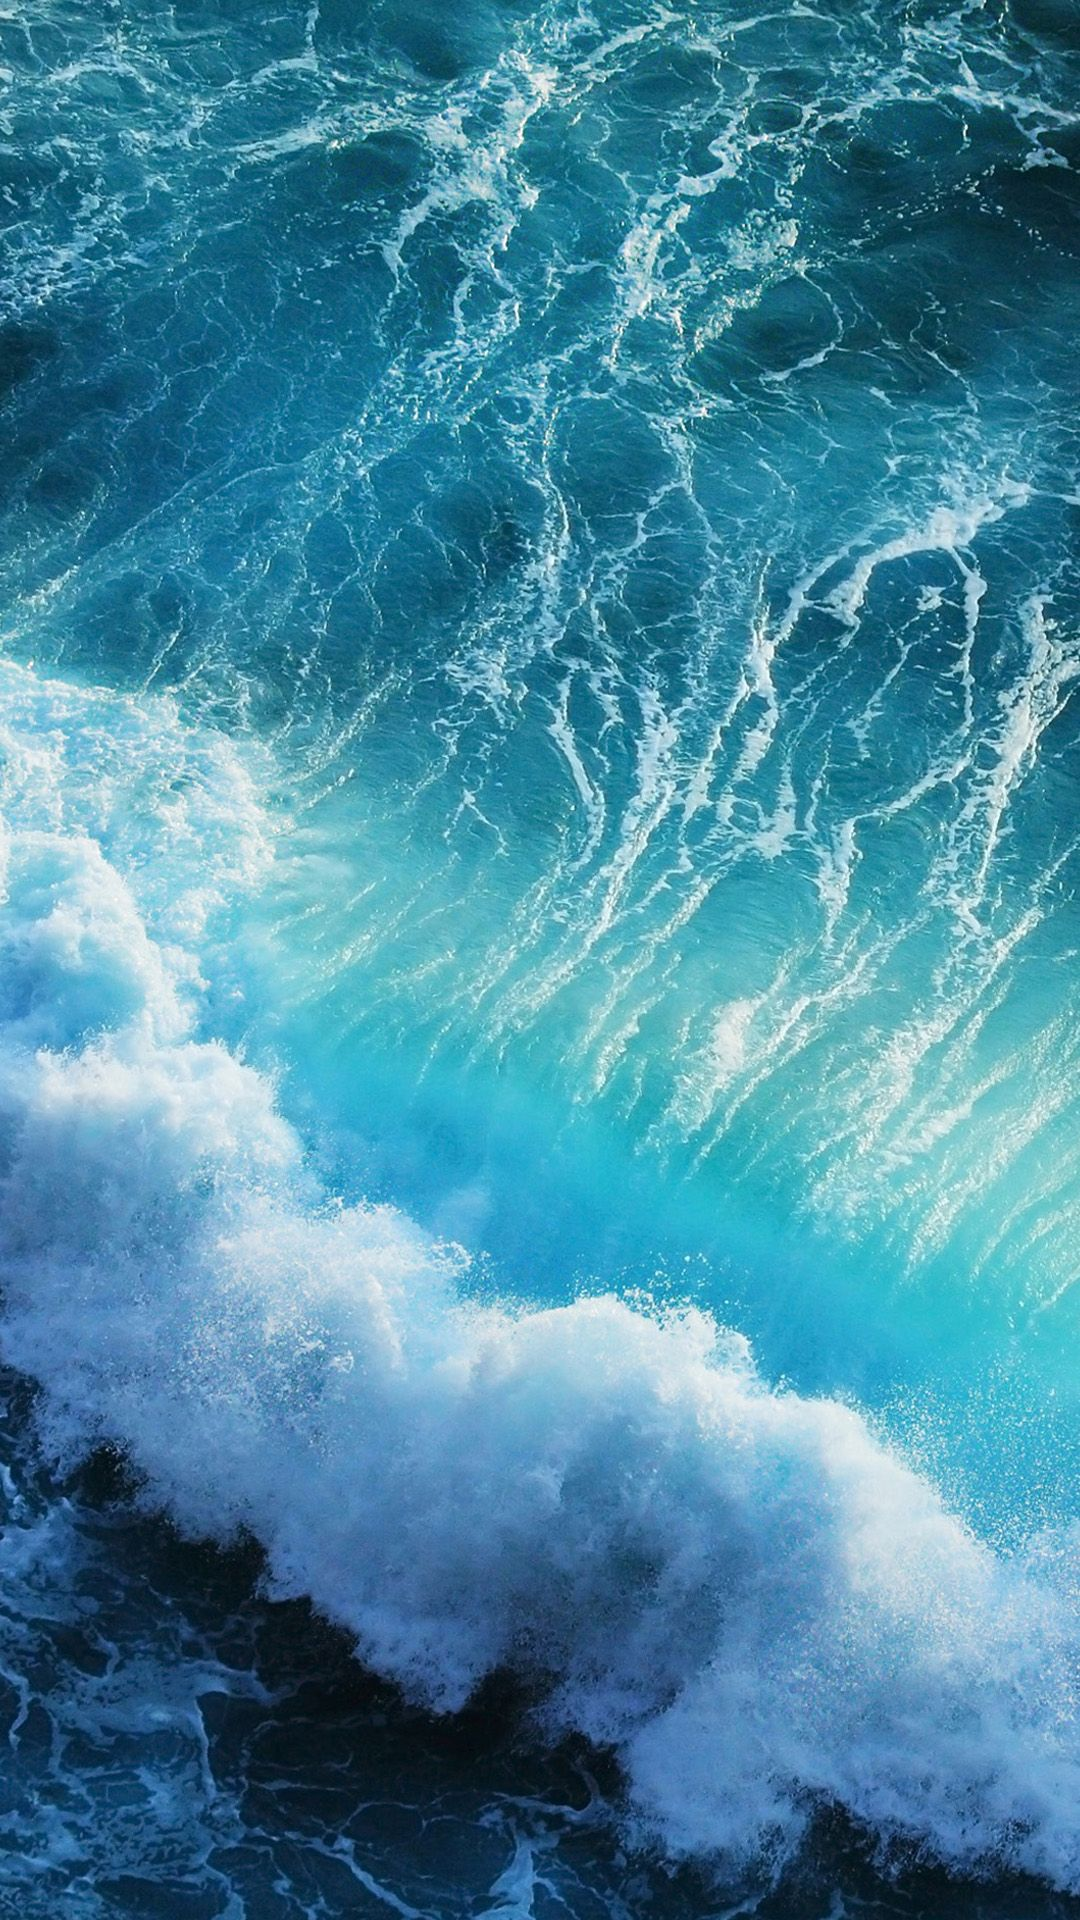 Sea water wallpaper